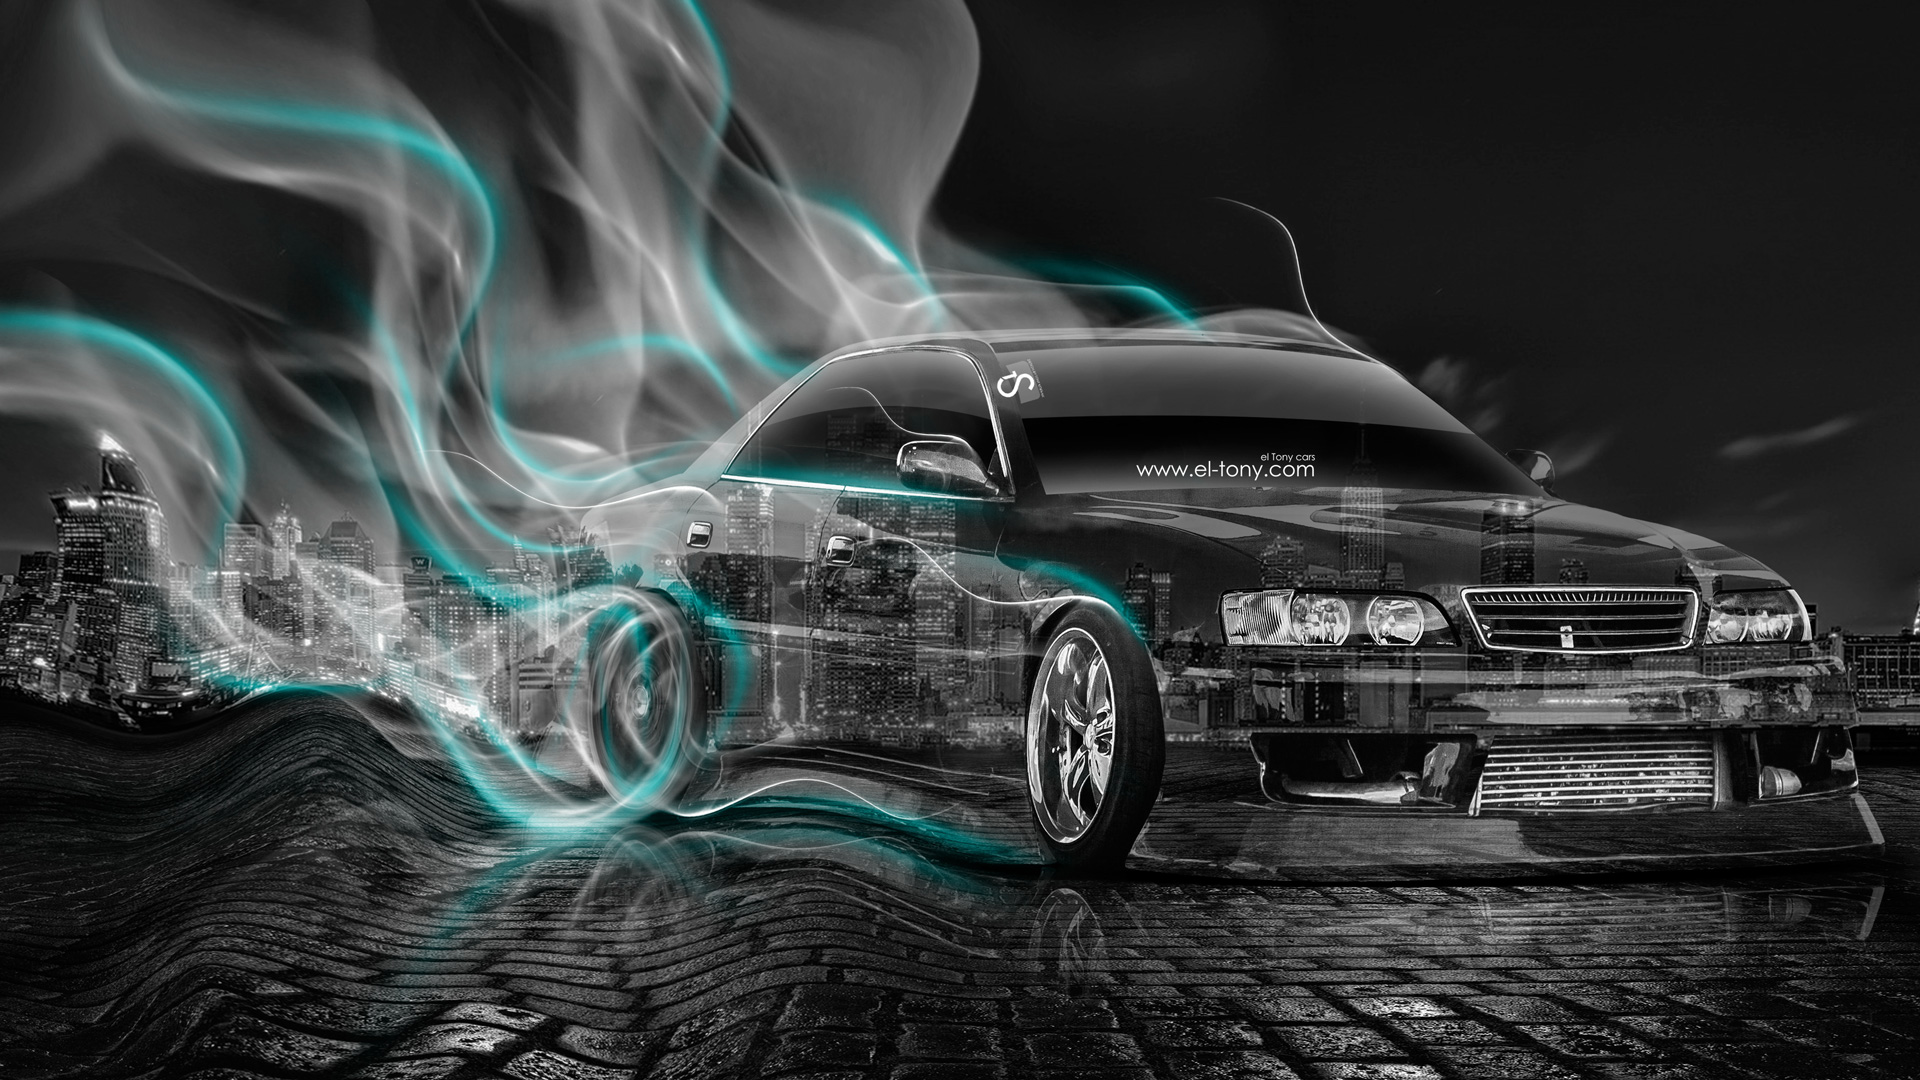 Toyota Chaser JZX100 JDM Style Crystal City Smoke